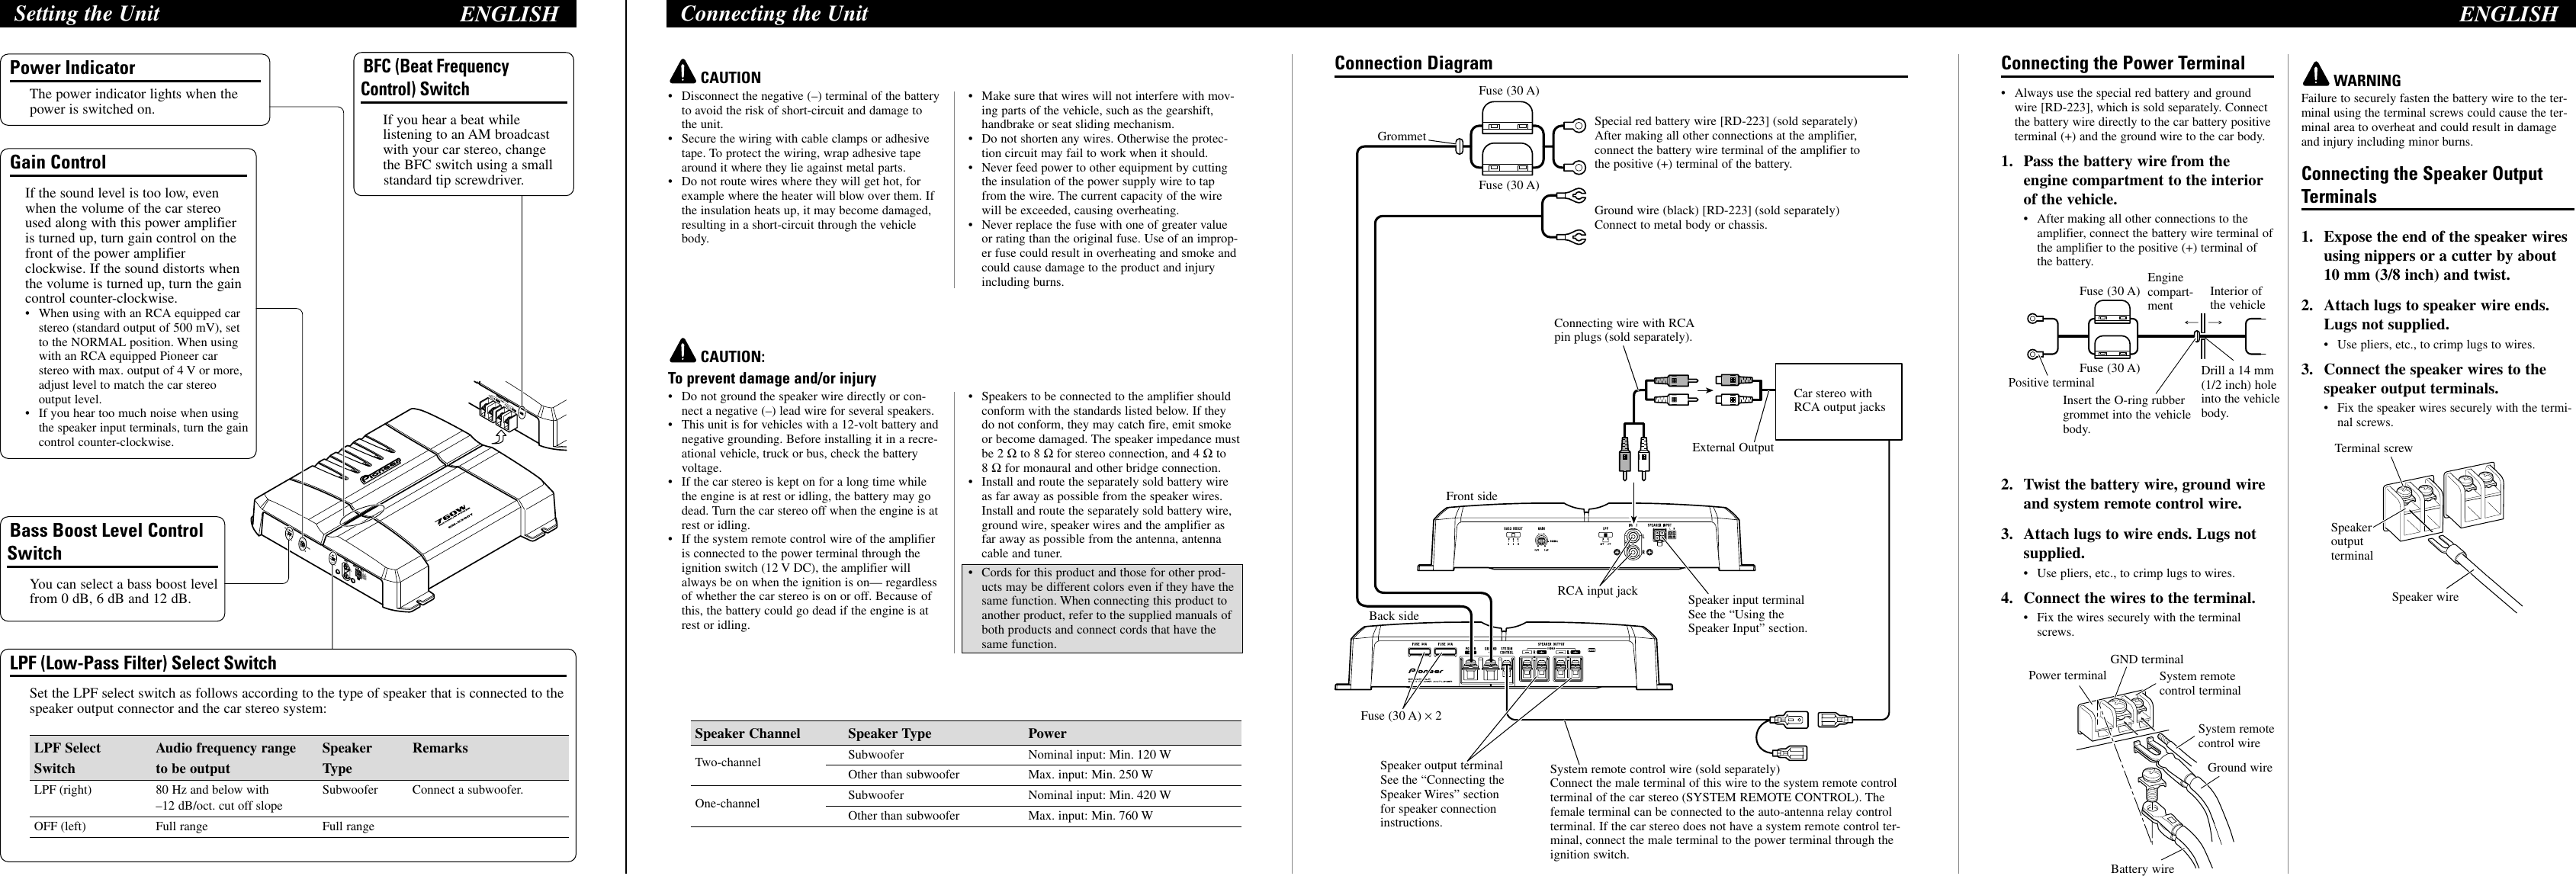 Wiring Diagram For Pioneer Gm 5300t. . Wiring Diagram on